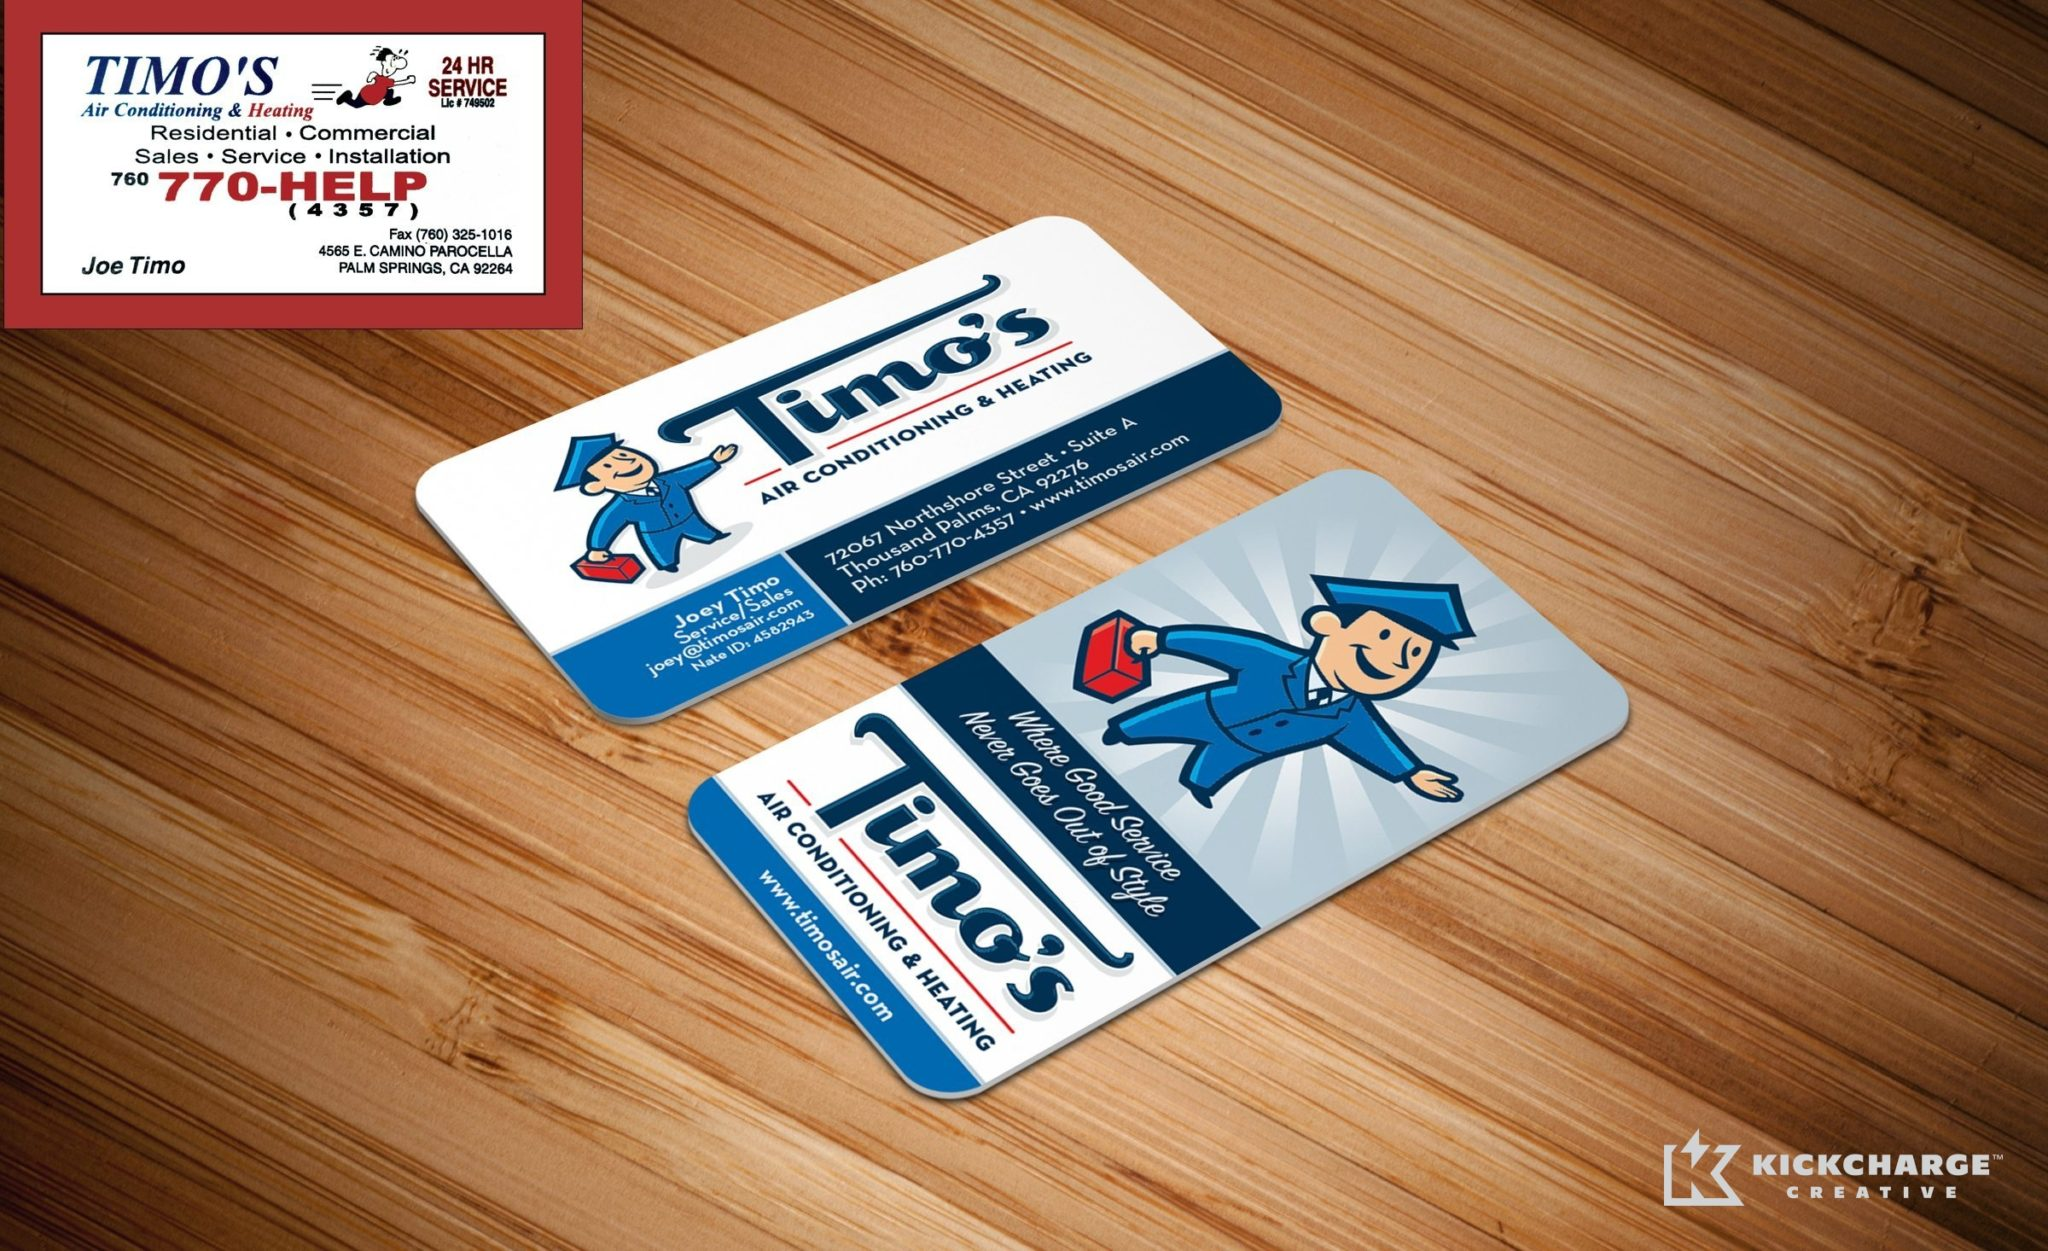 Before & after re-design of business cards for Timo's Air Conditioning & Heating in Thousand Palms, CA.